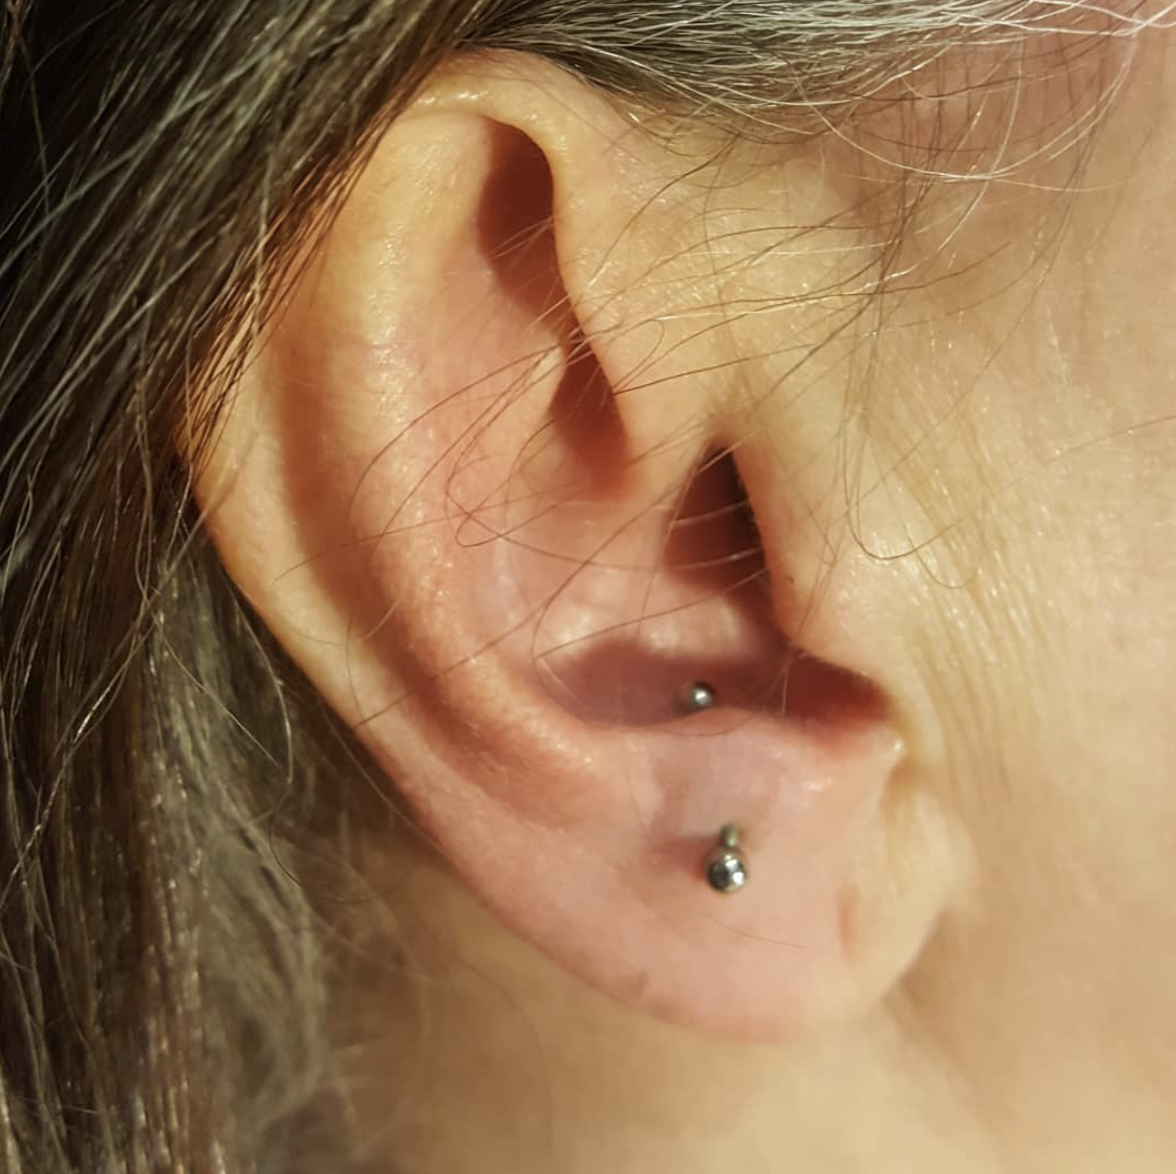 Ear Piercing What You Should Know Before Getting Pierced